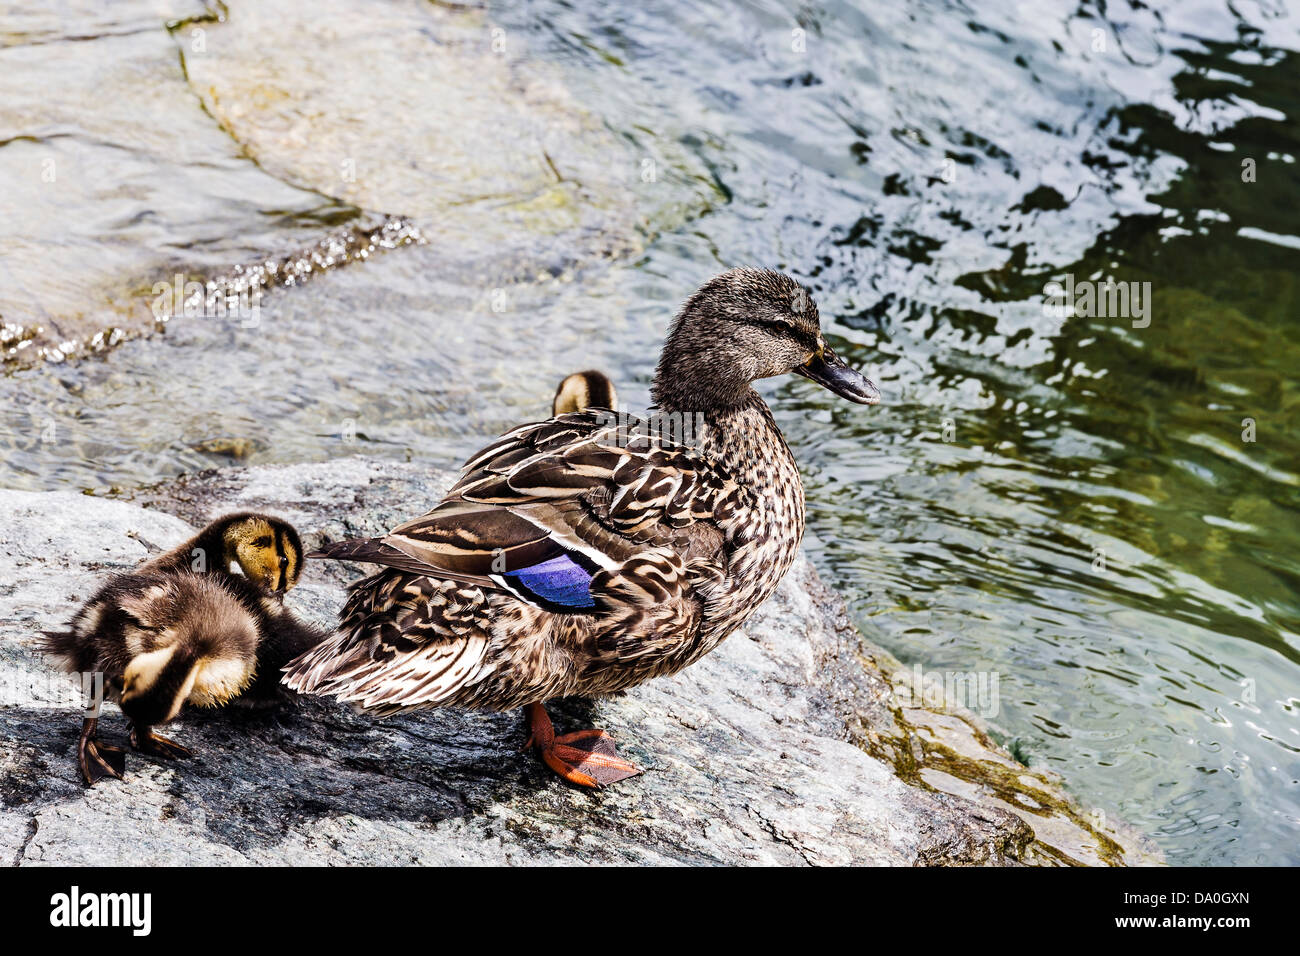 Duck with a brood of ducklings - Stock Image